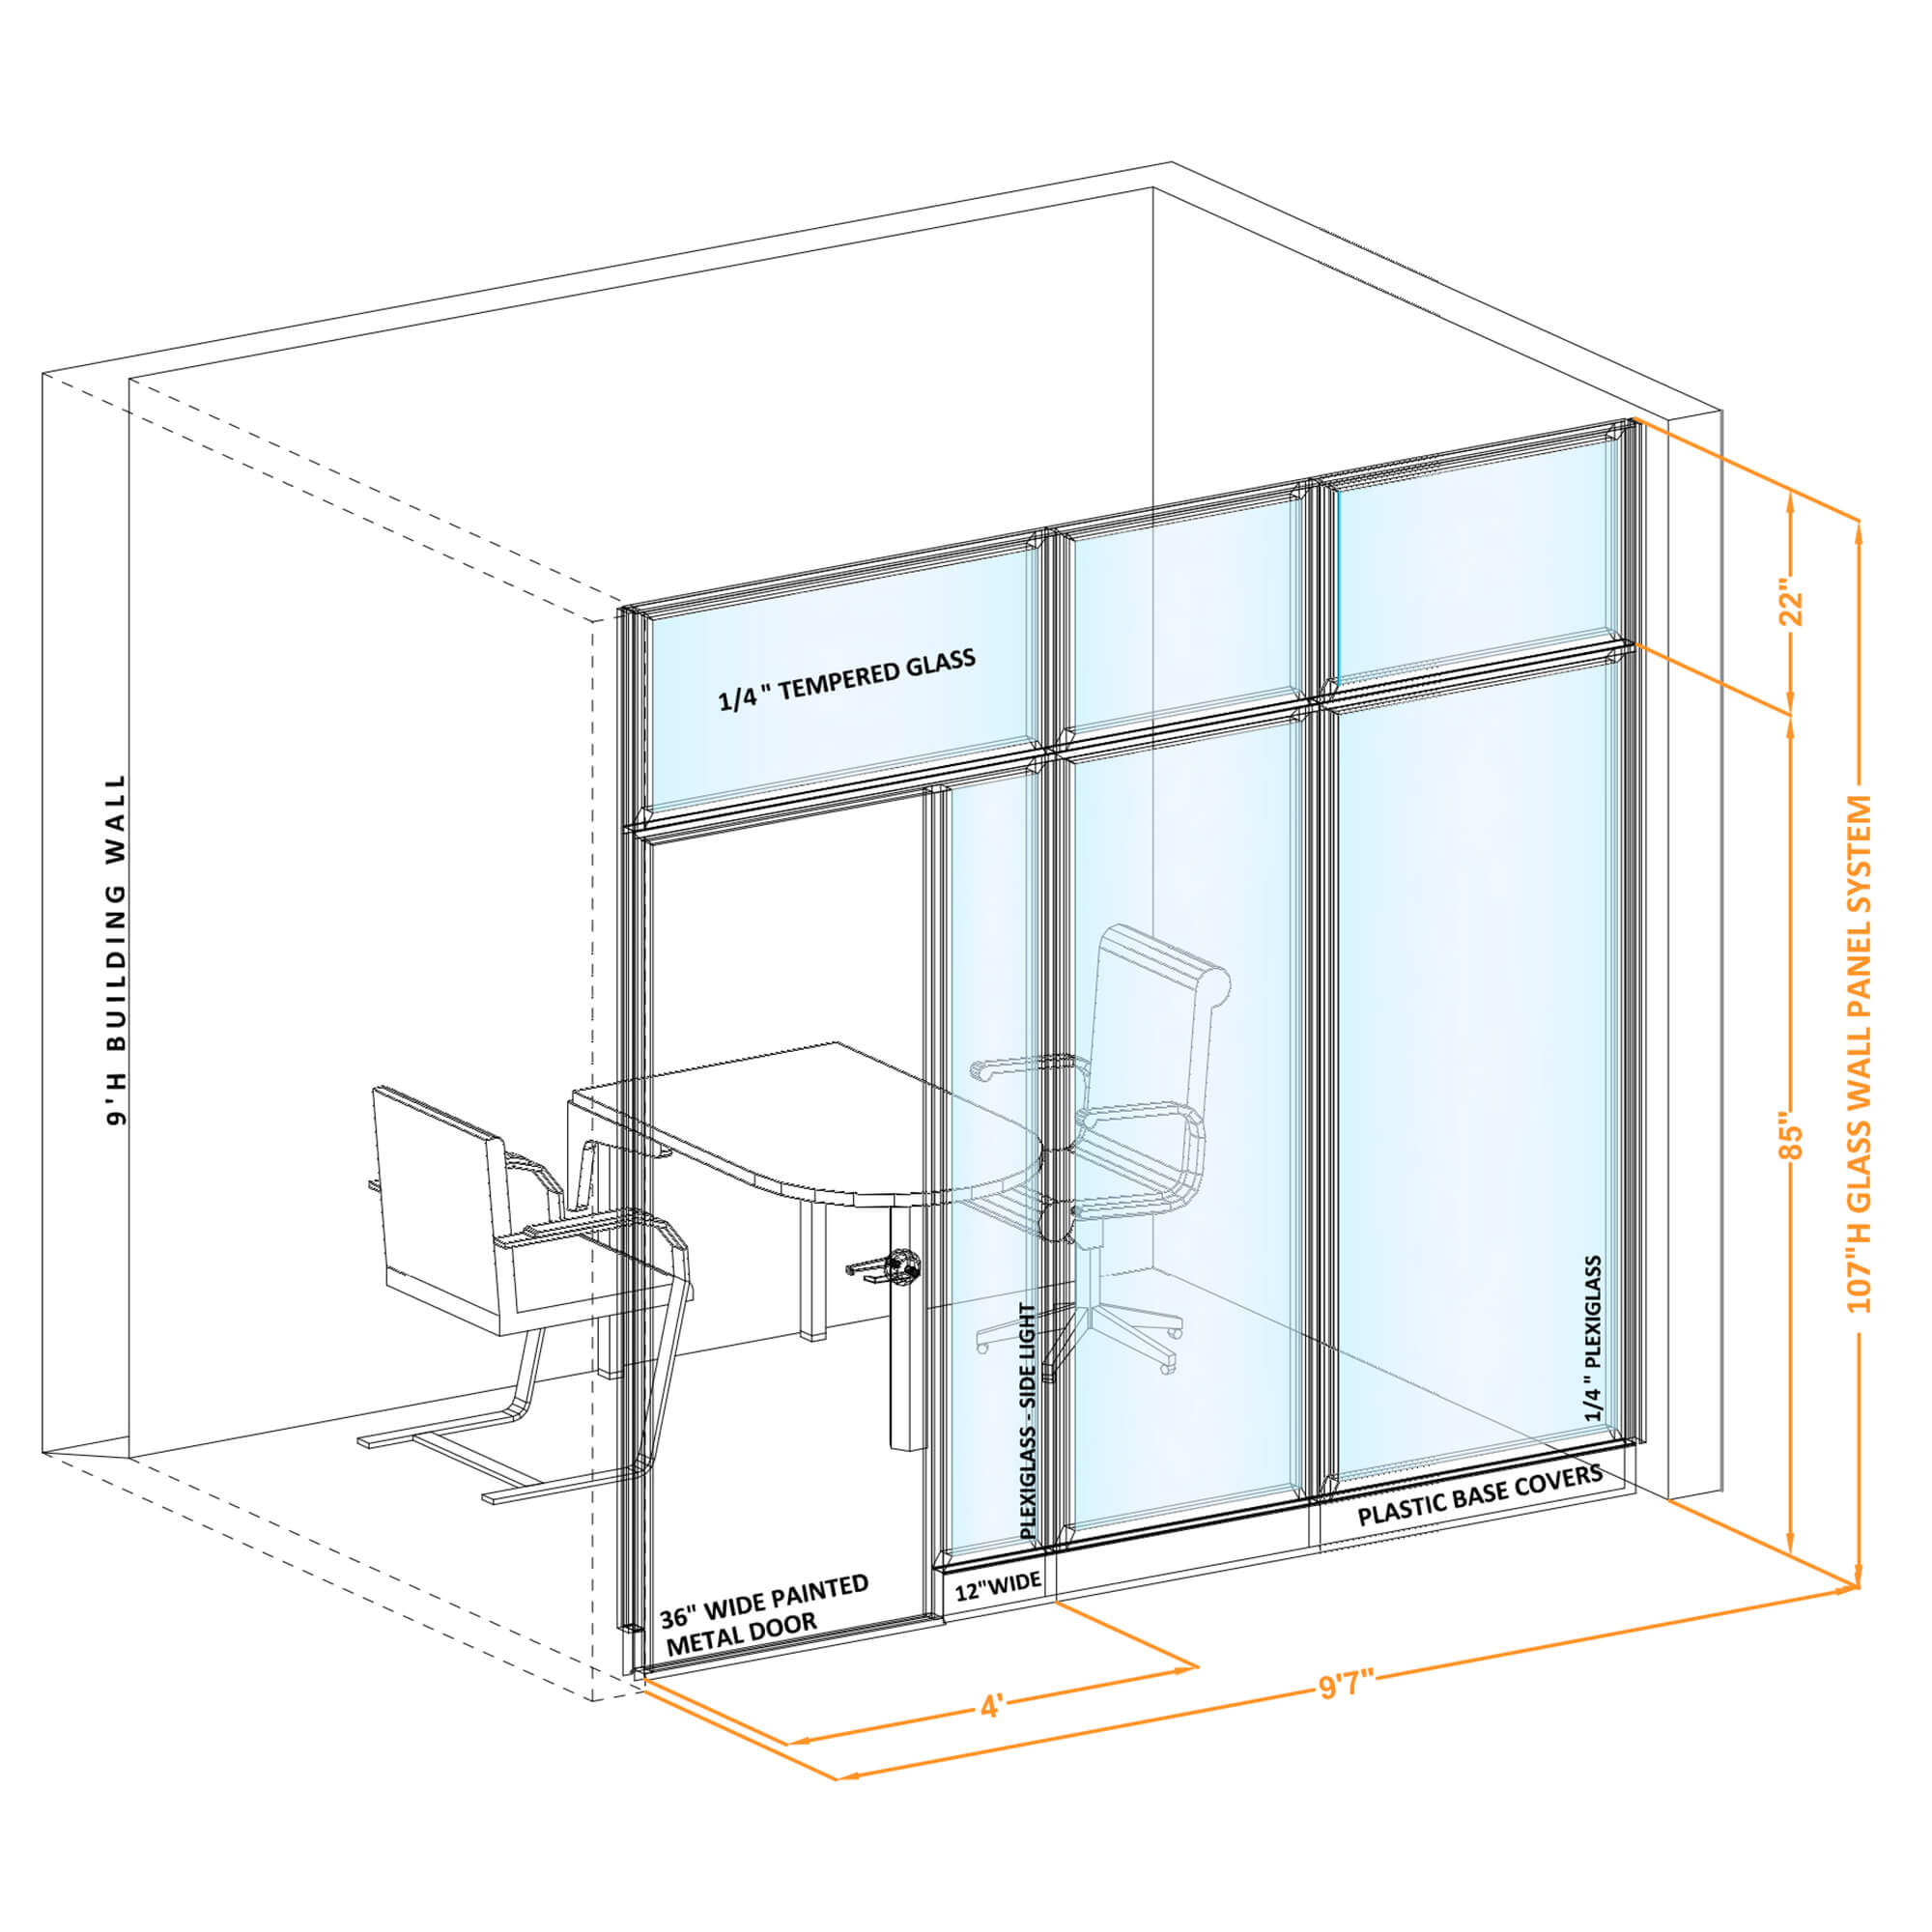 Modular glass office walls GWCR I 96x1070